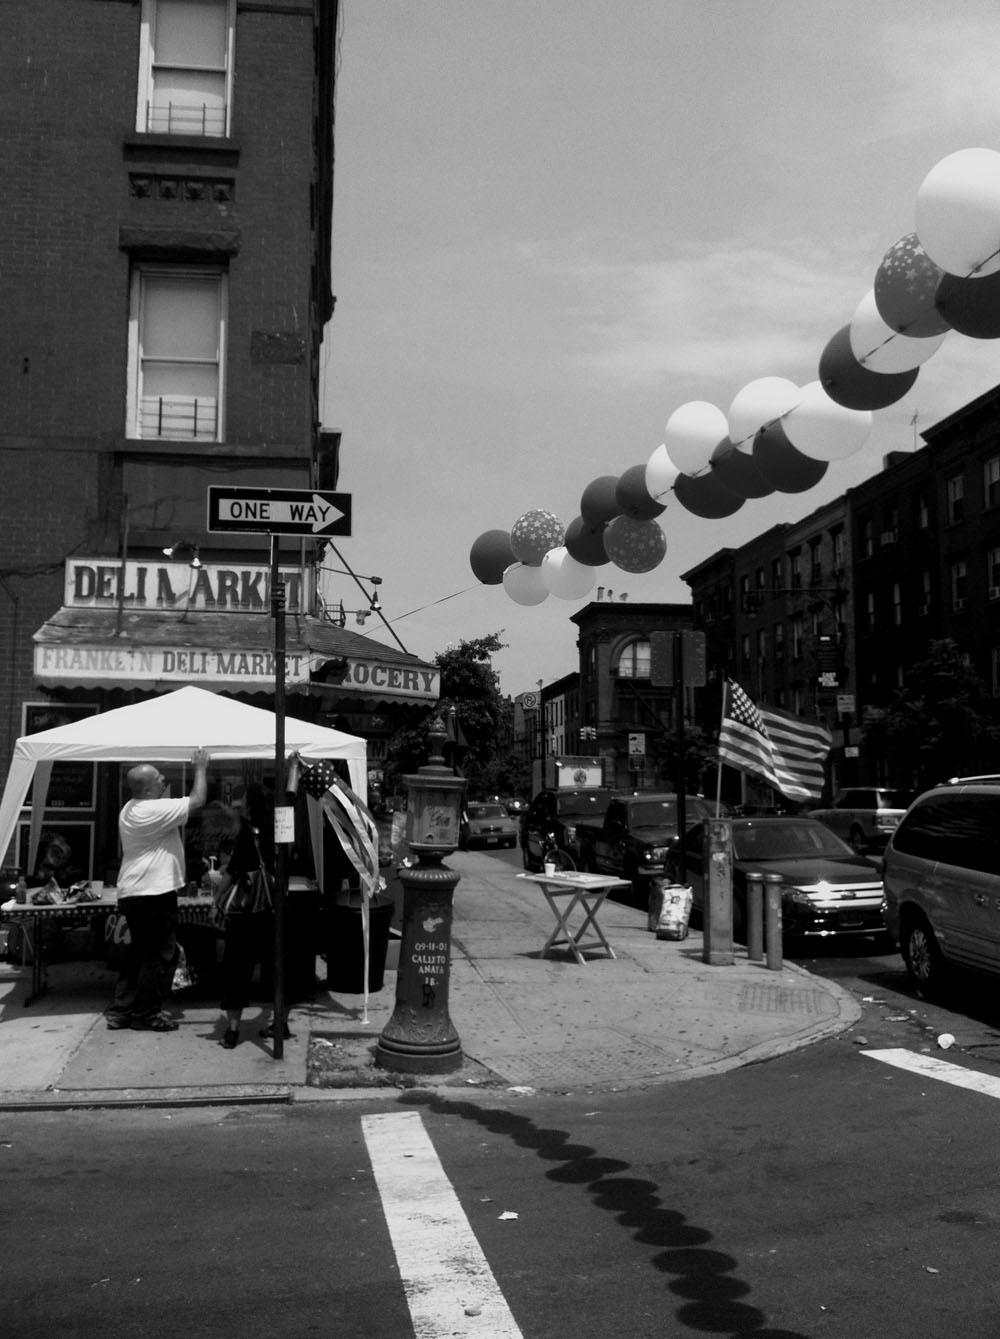 Fourth of July Greenpoint, Brooklyn NY July 2012